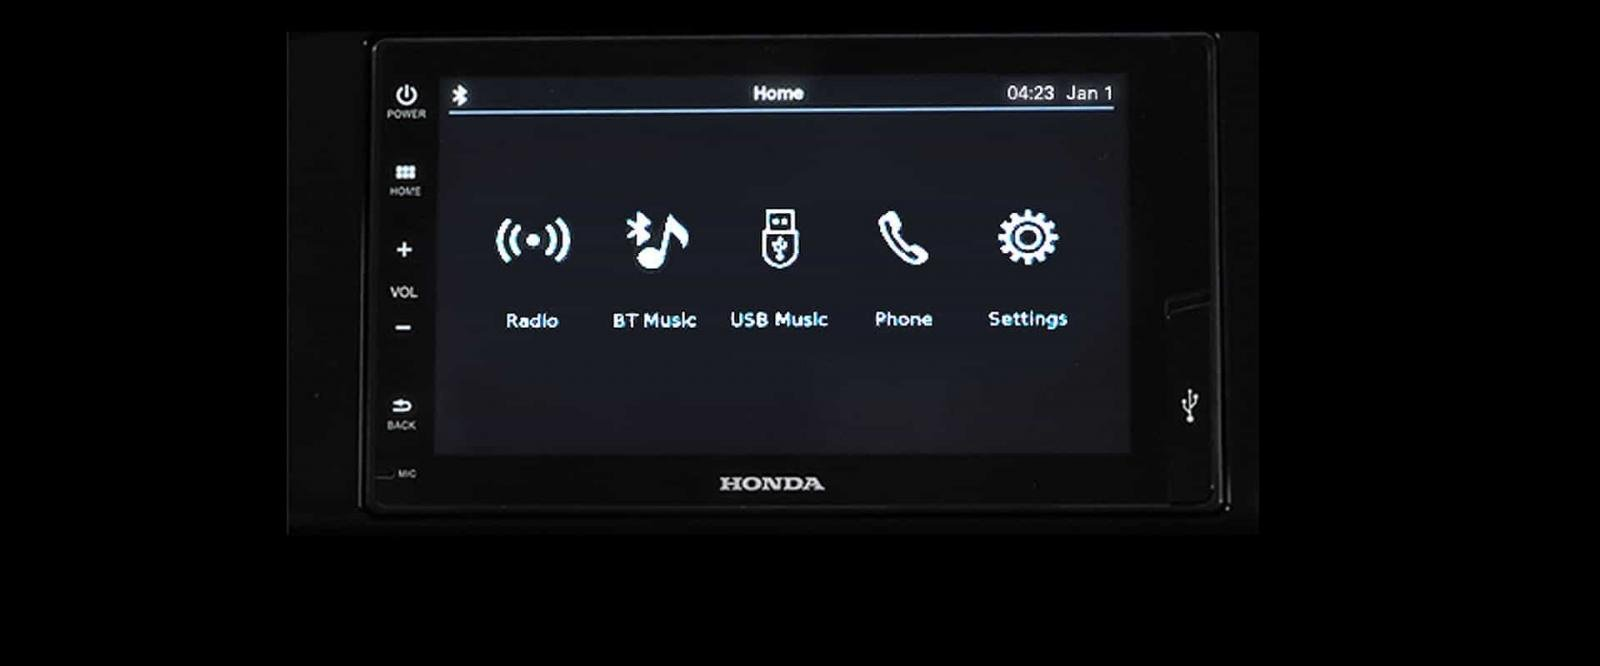 Honda Brio infotainment screen